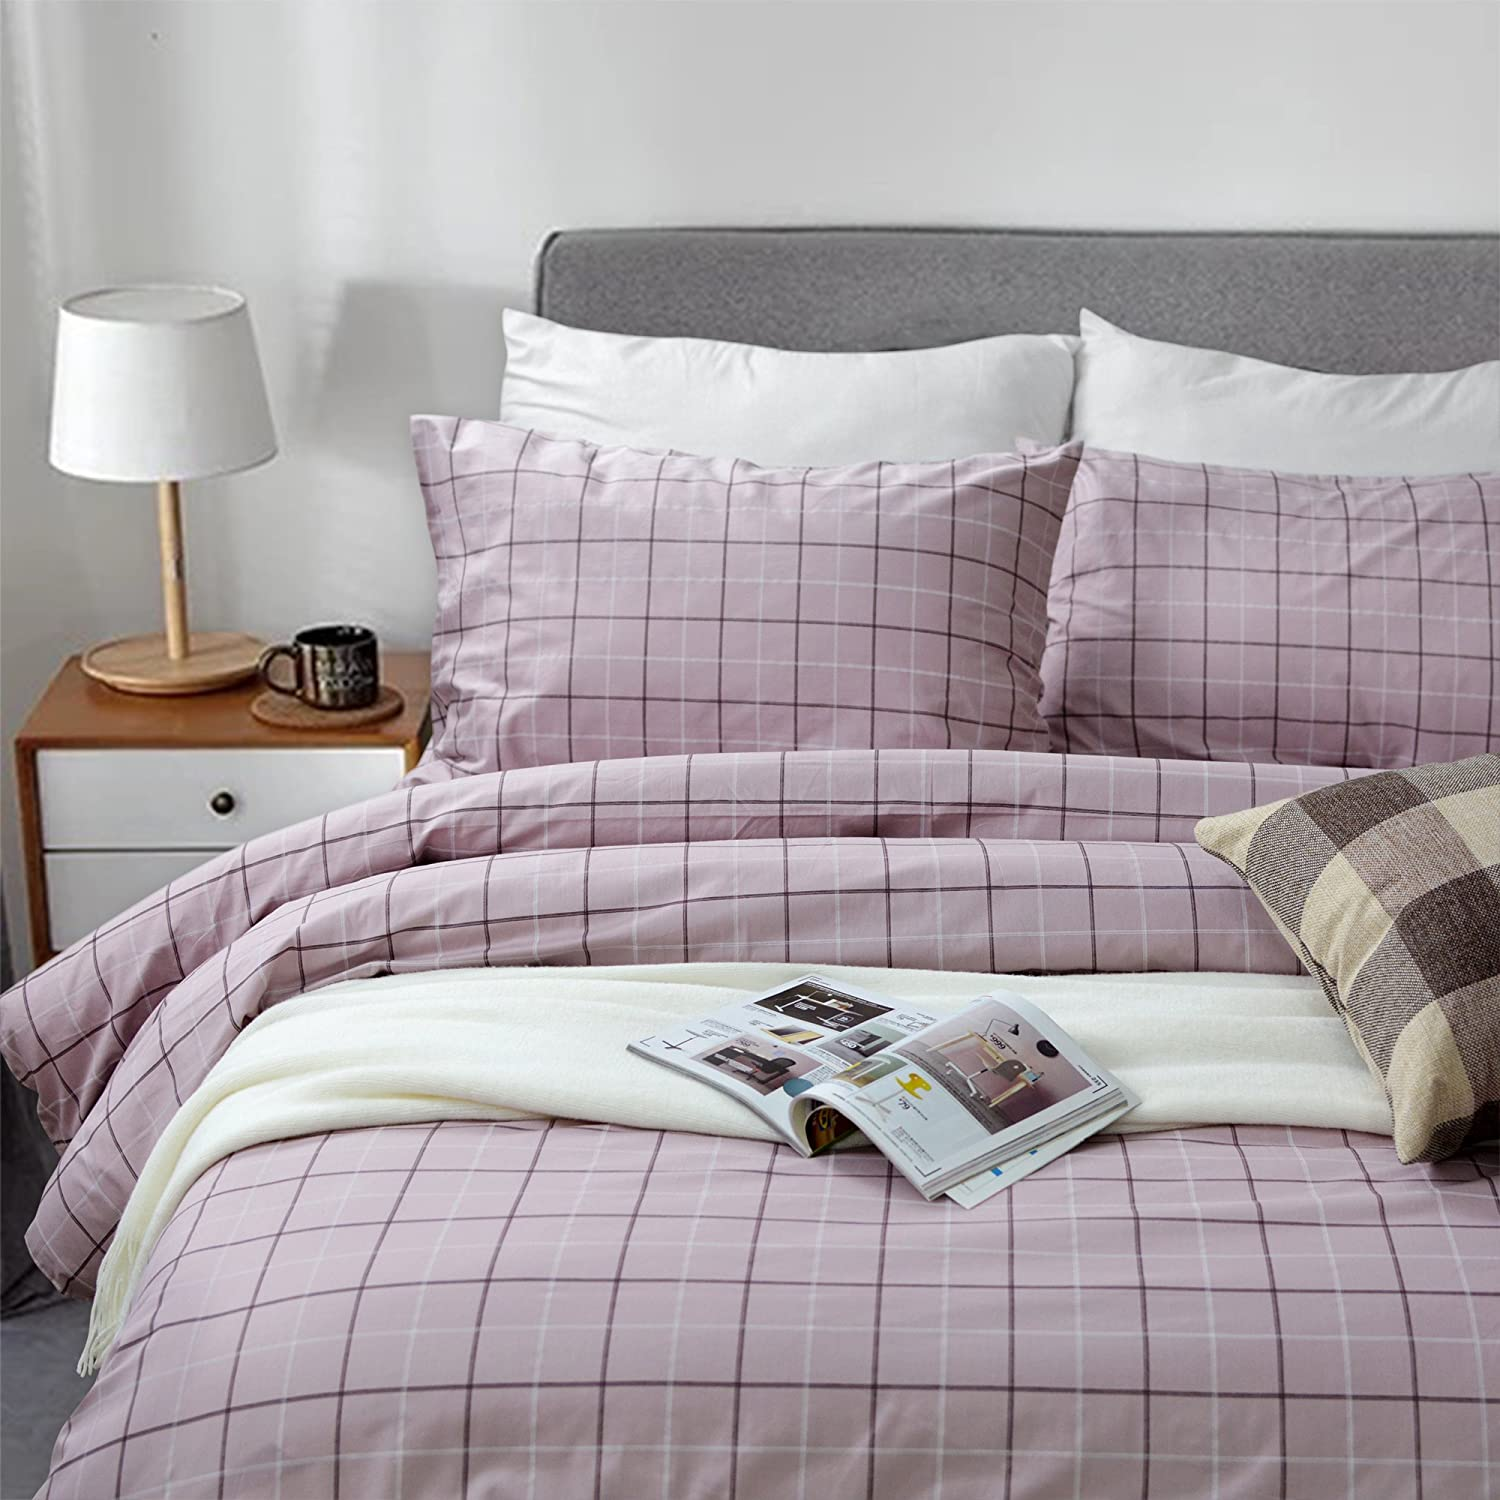 FADFAY Grid Duvet Cover Sets Lightweight Cotton Bedding Set Lattice Checkered Reversible Light Purple Duvet Cover Bedding Collection 3 Pieces,1duvet Cover & 2pillowcases,Twin Size